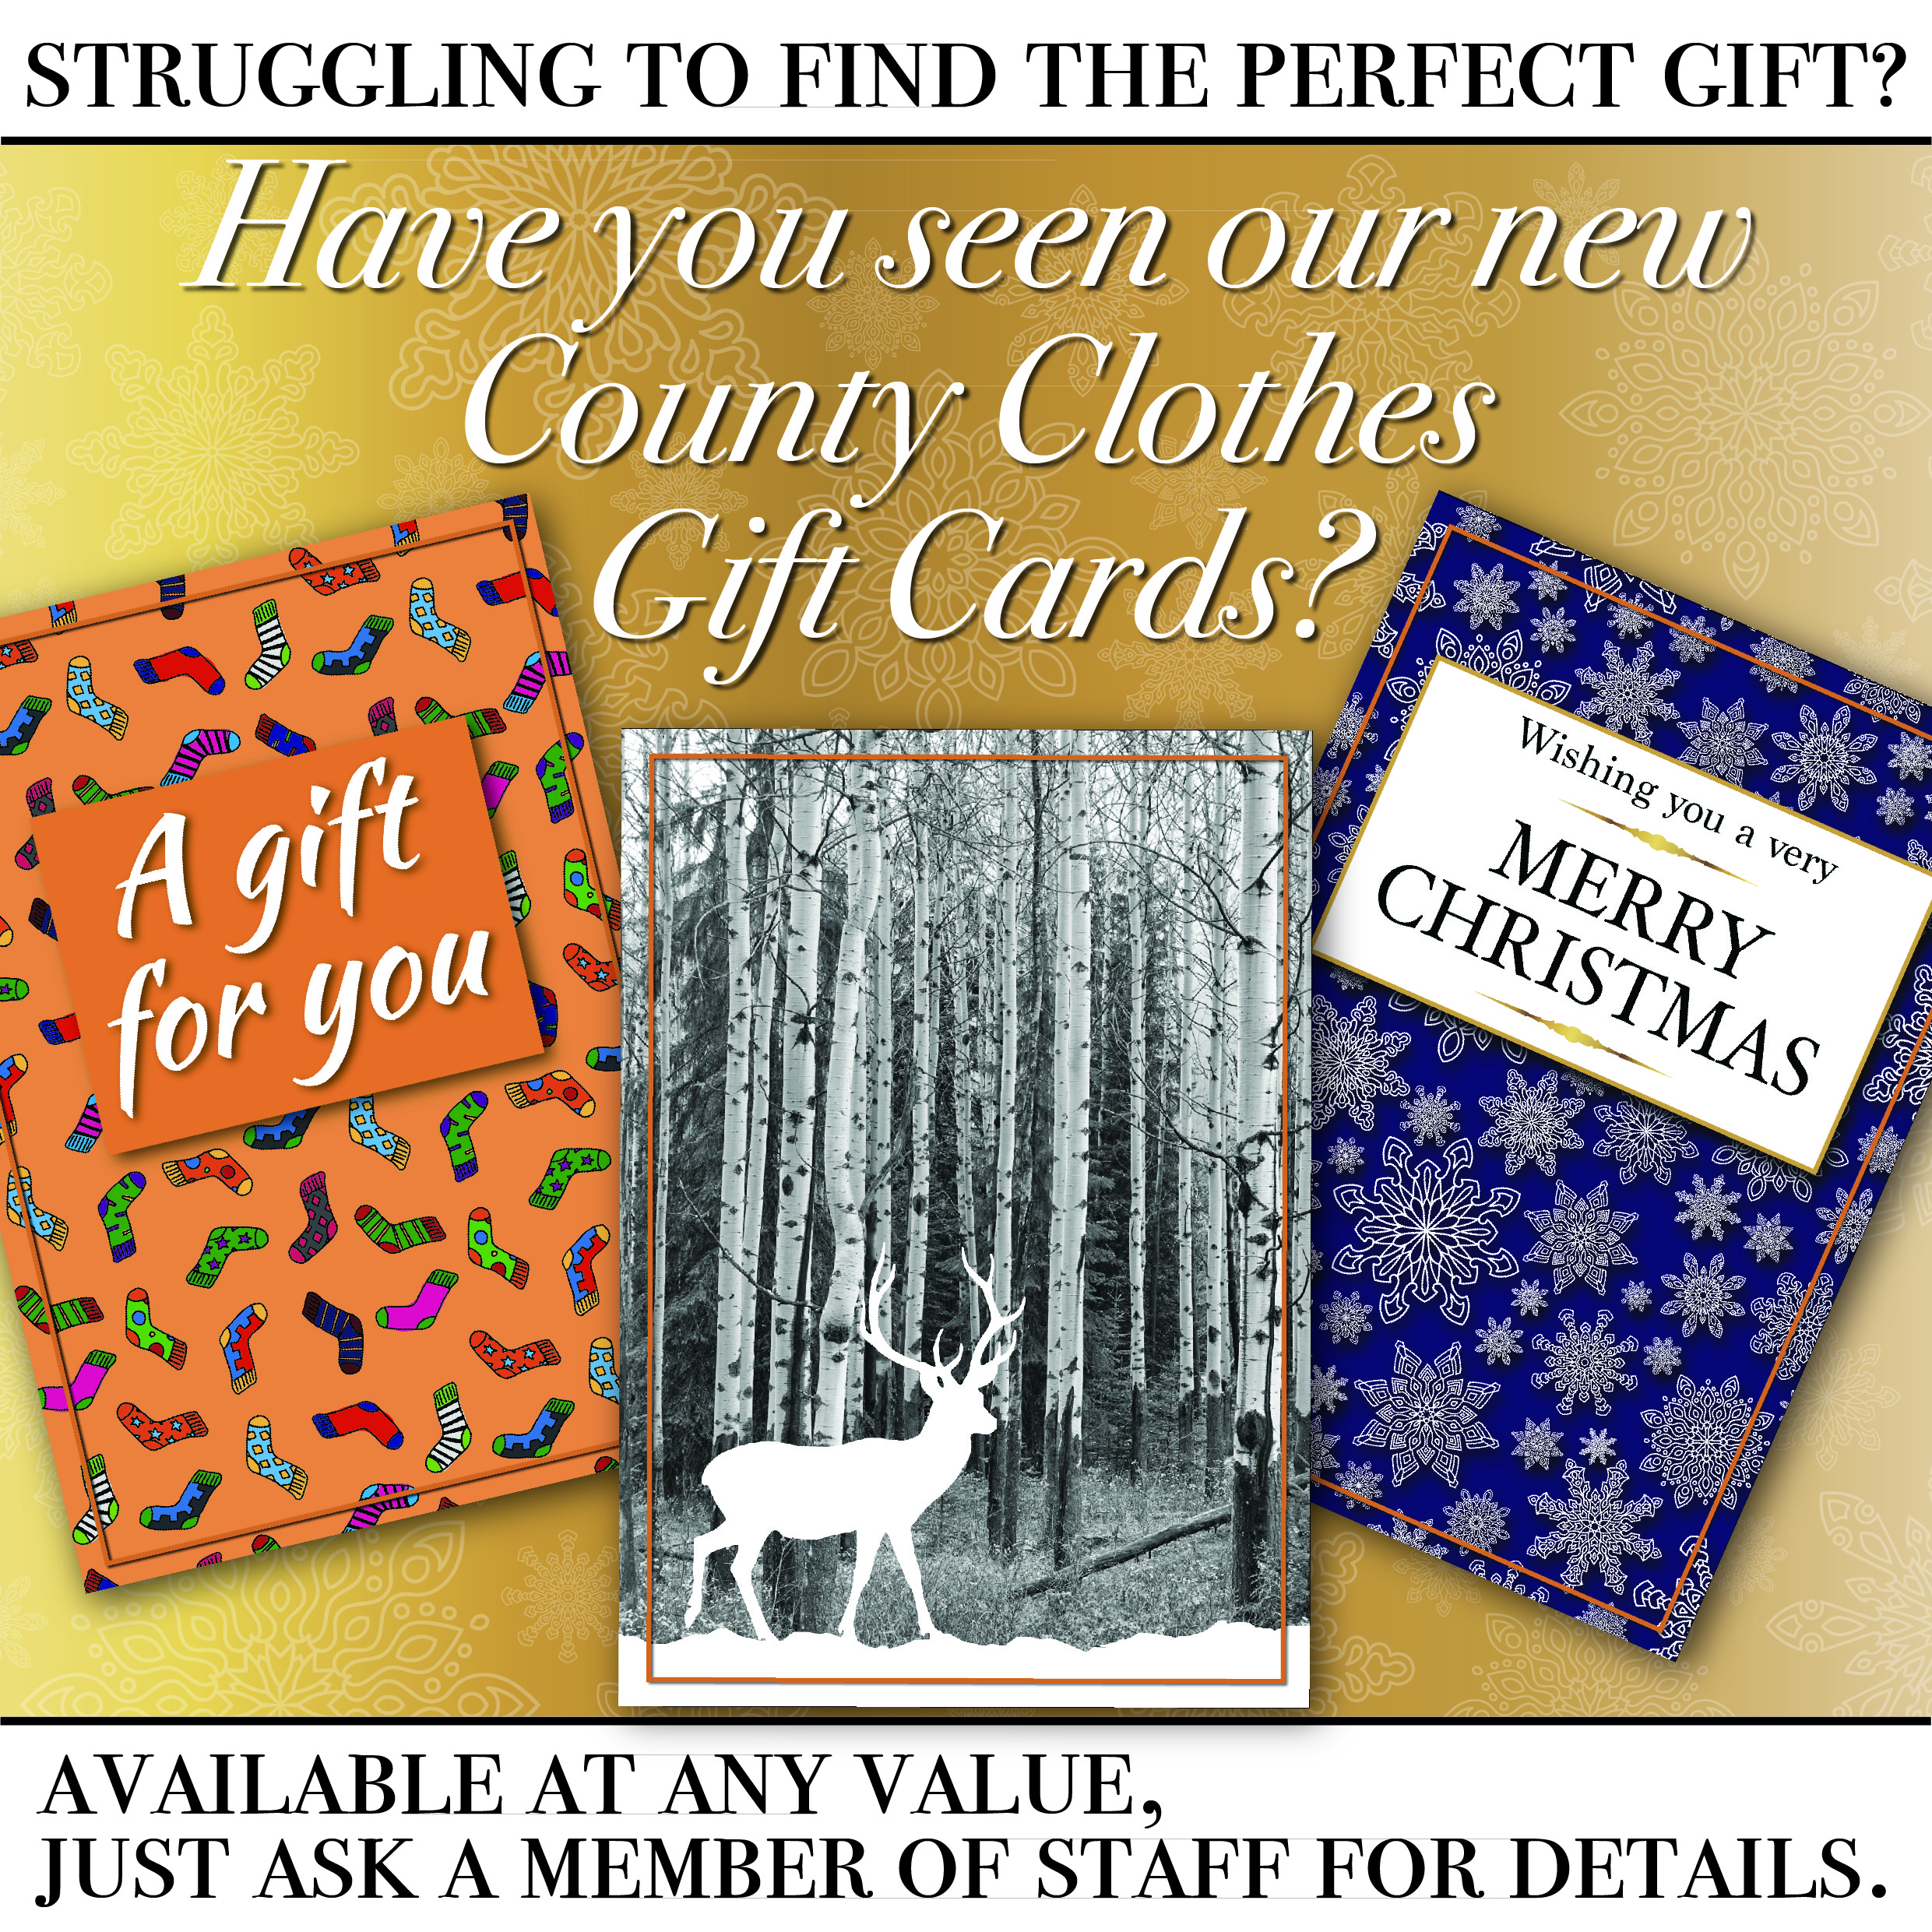 Struggling to find the perfect gift?